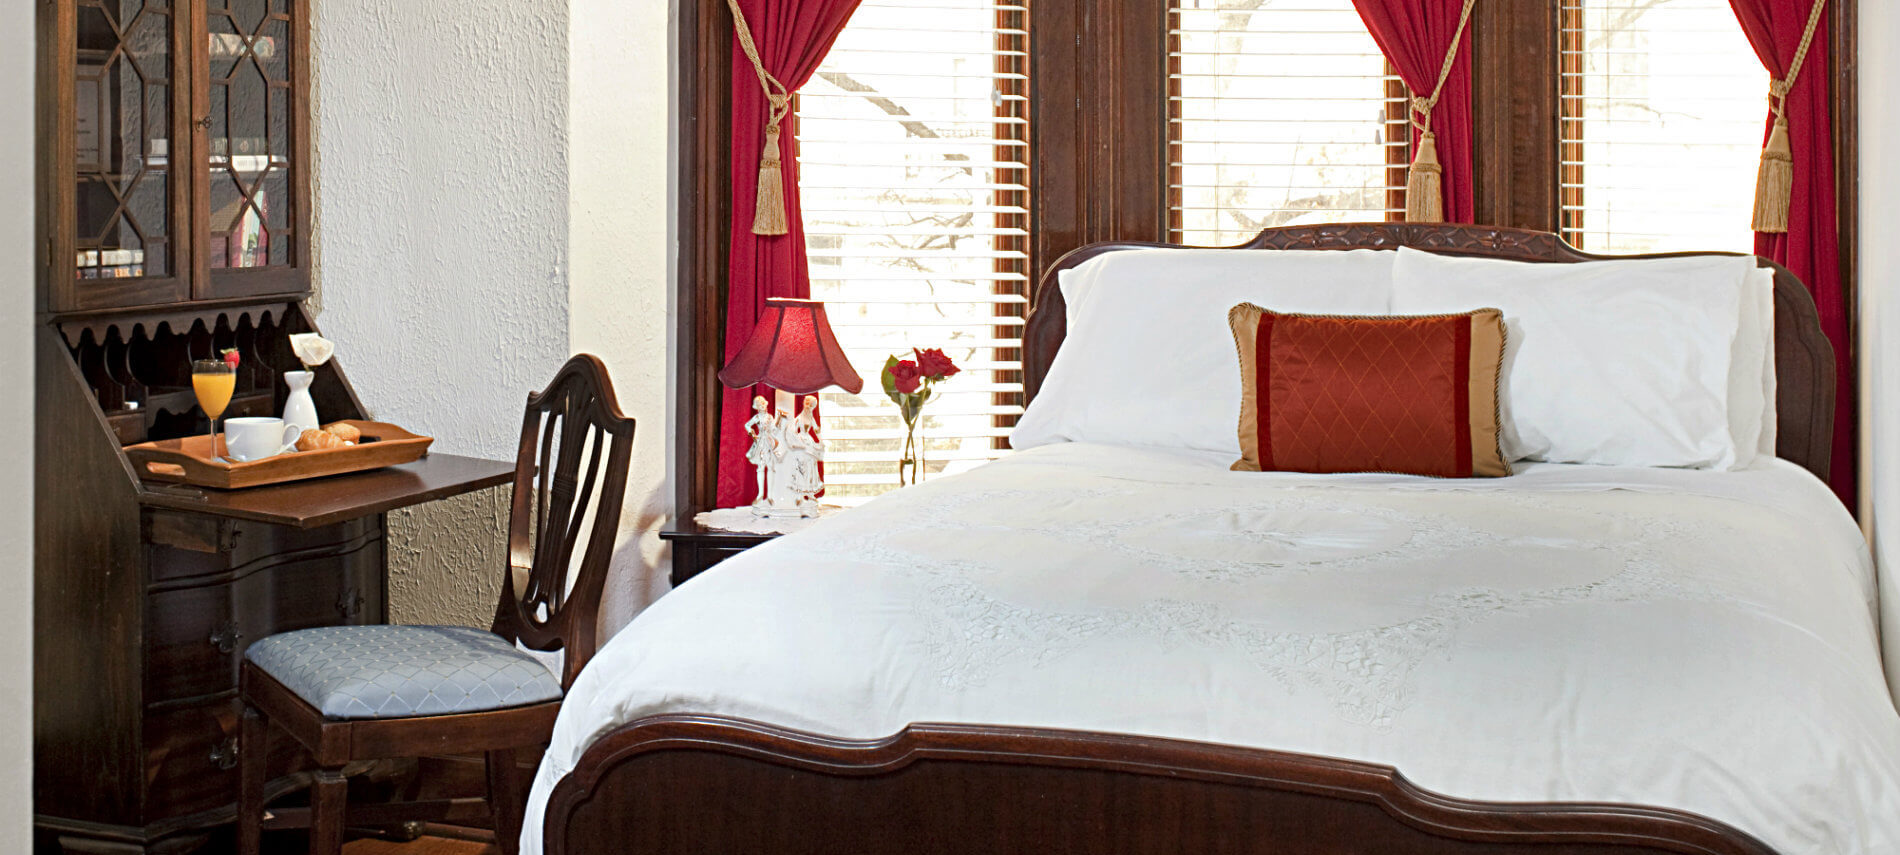 Large wooden bed covered with white with a big window behind it